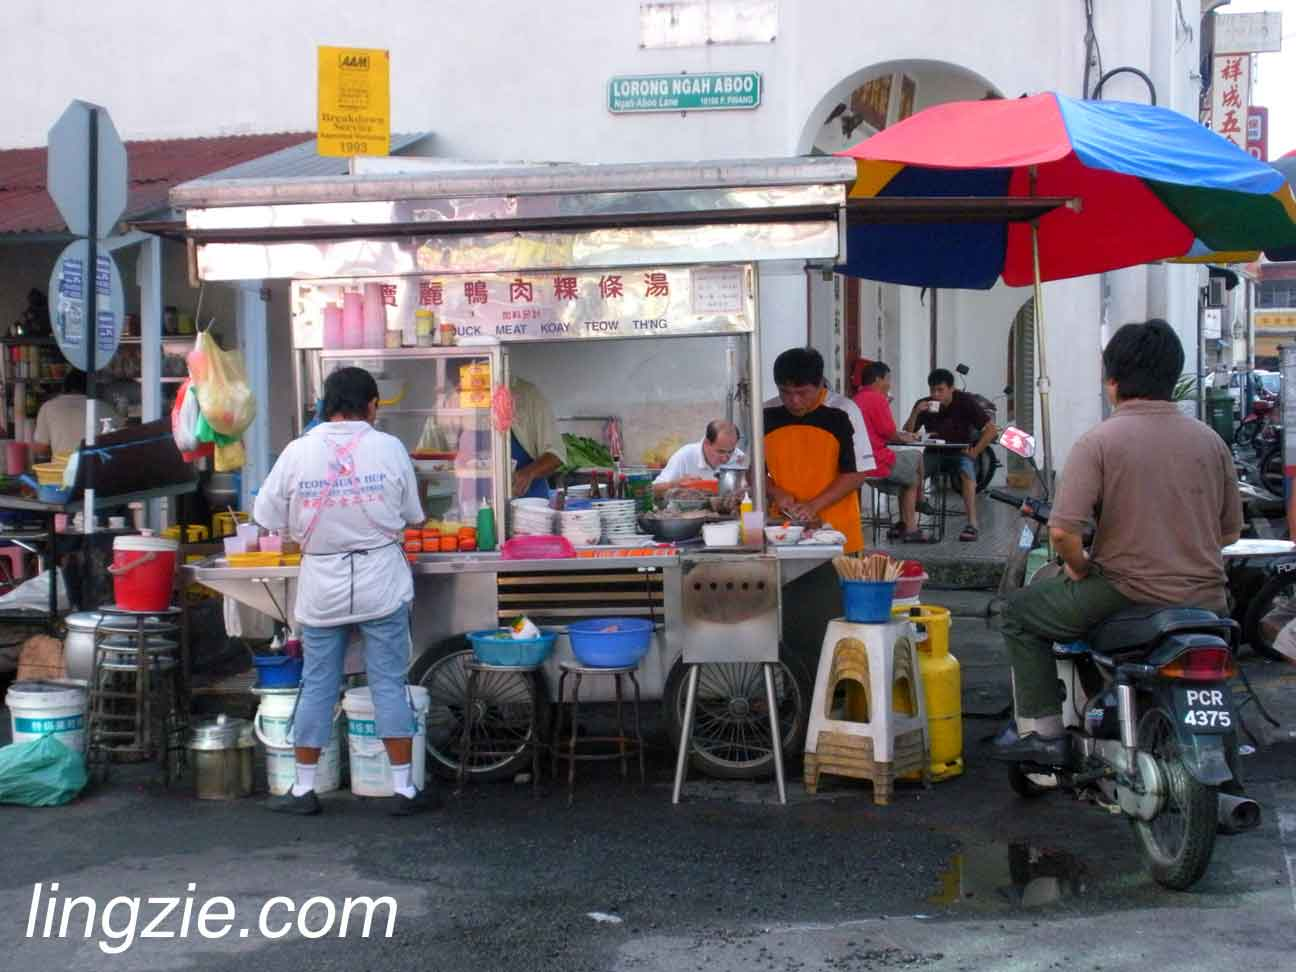 Koay Teow Th'ng Stall